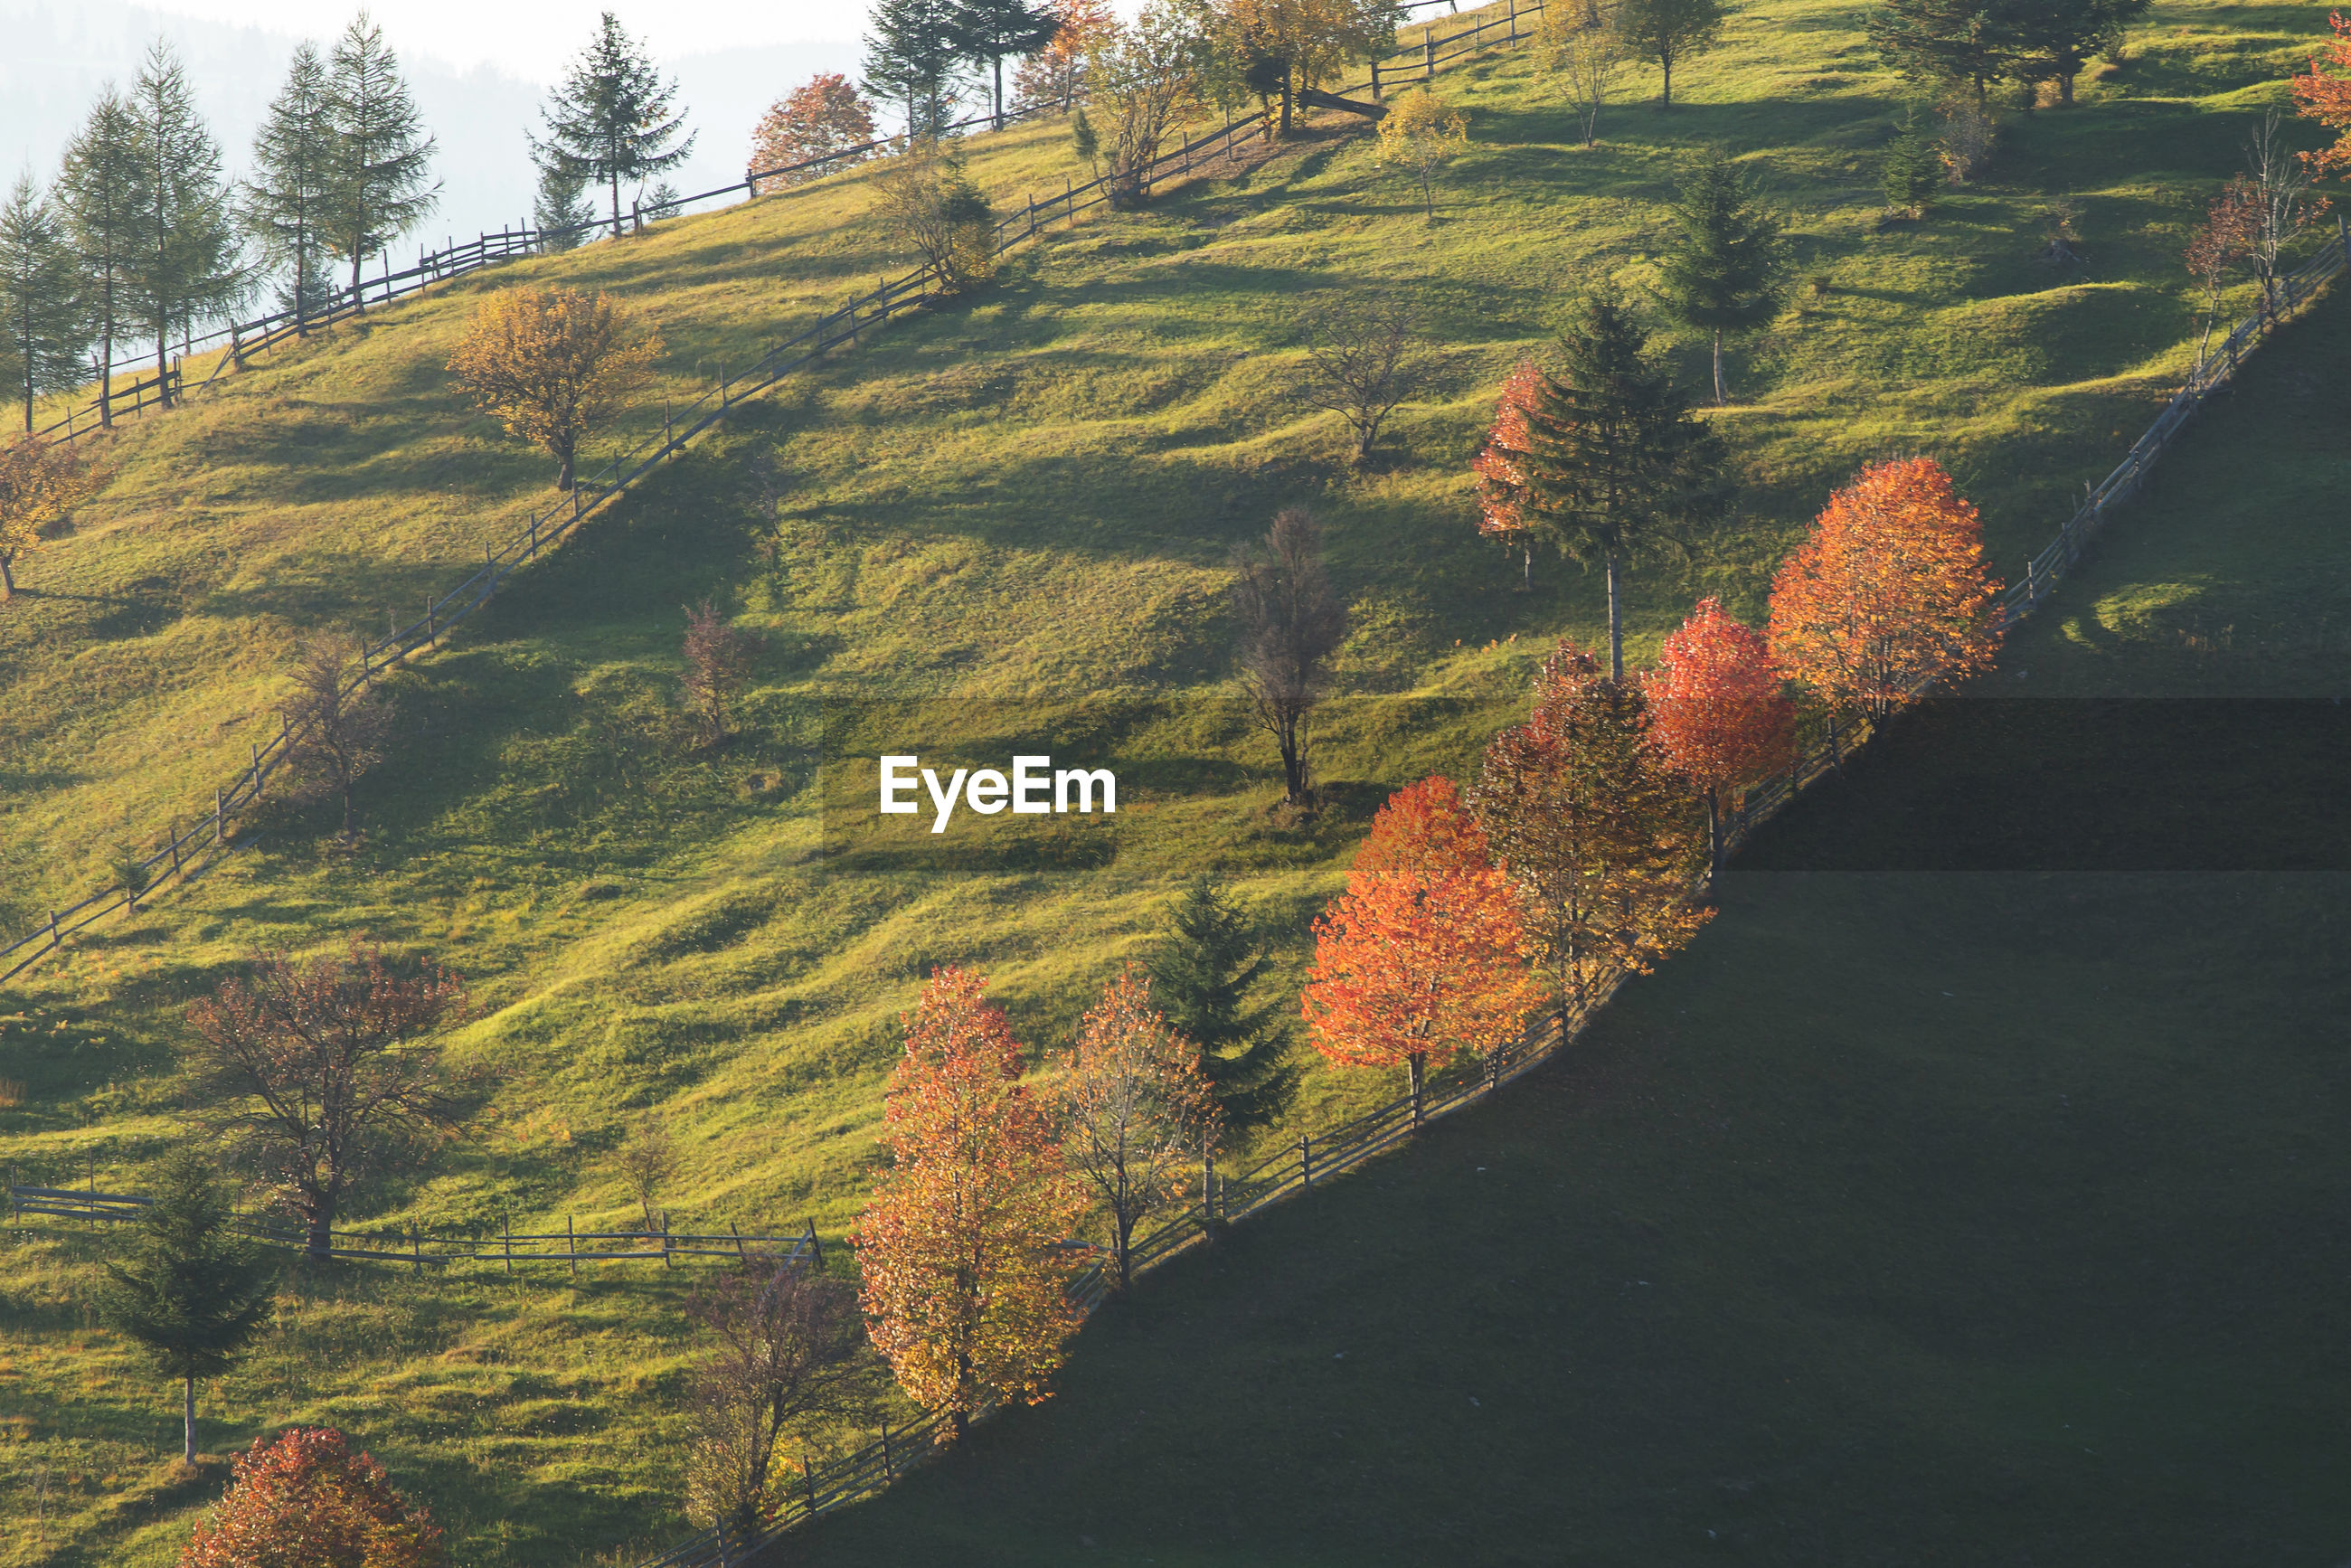 Scenic view of trees on landscape during autumn